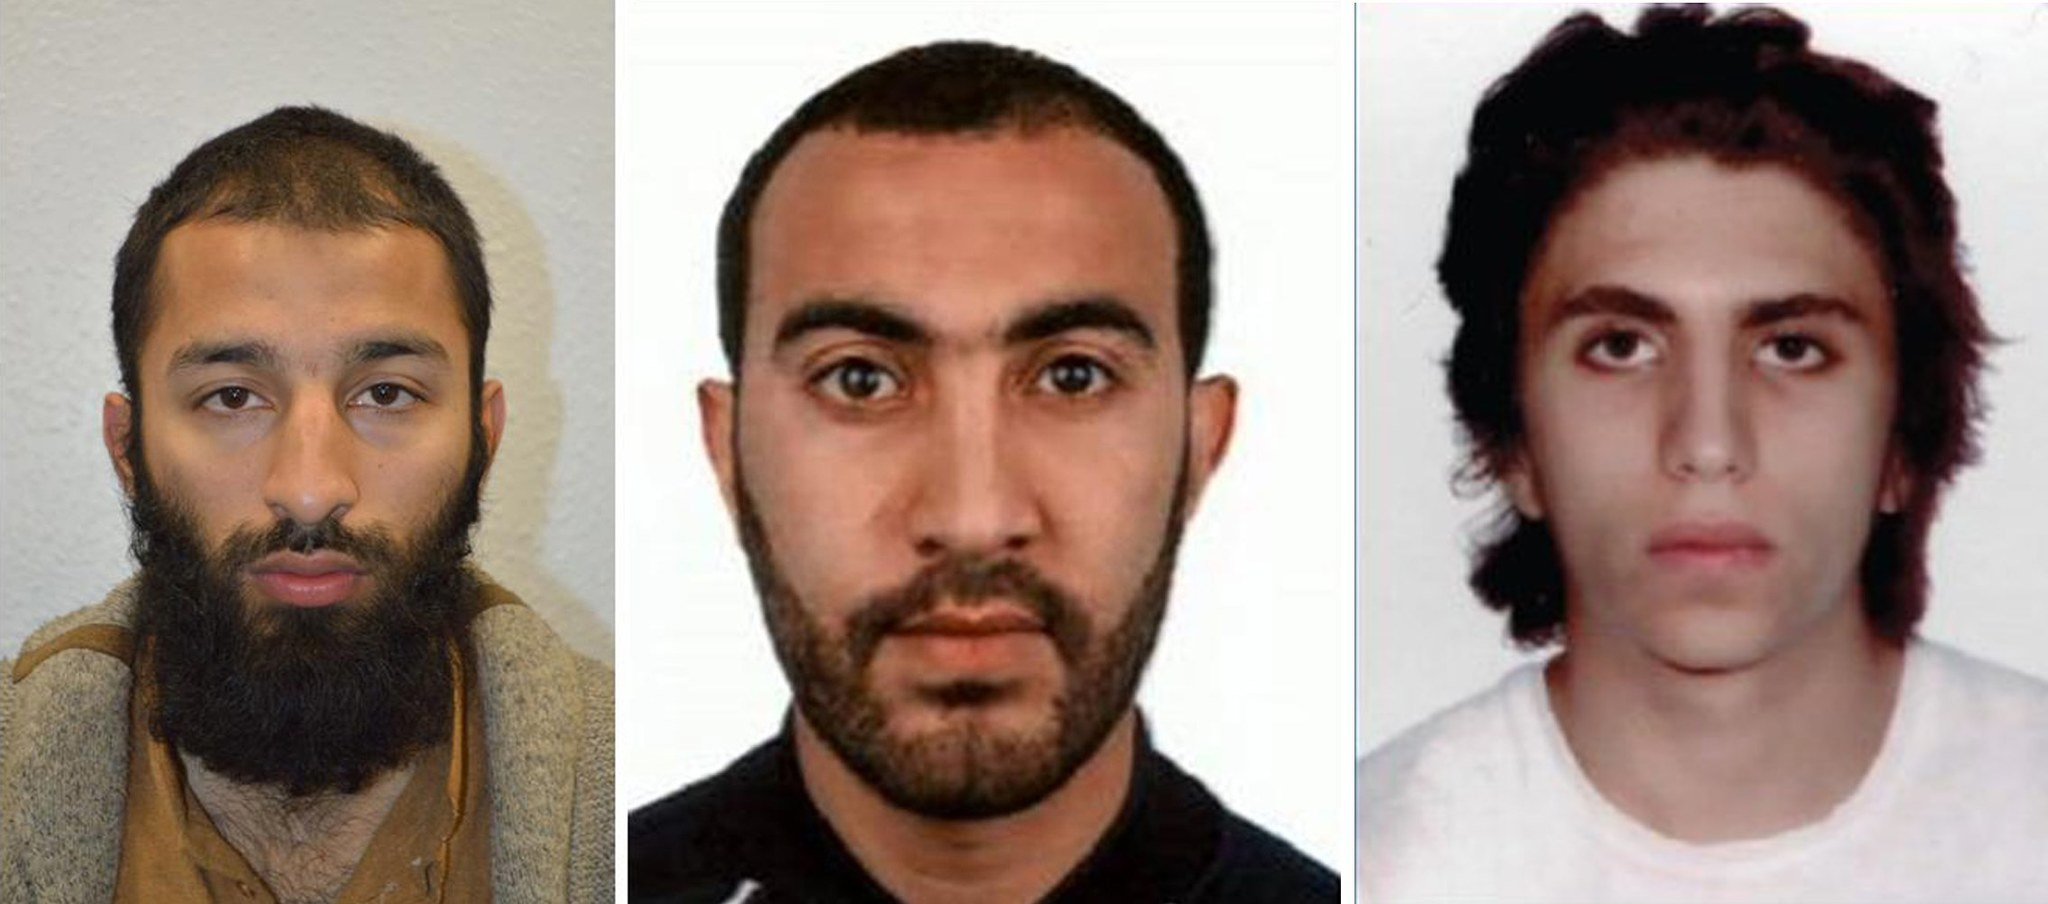 Authorities say Khuram Shazad Butt, from left, Rachid Redouane and Youssef Zaghba were the men shot dead by police following a terrorist attack that began on London Bridge.